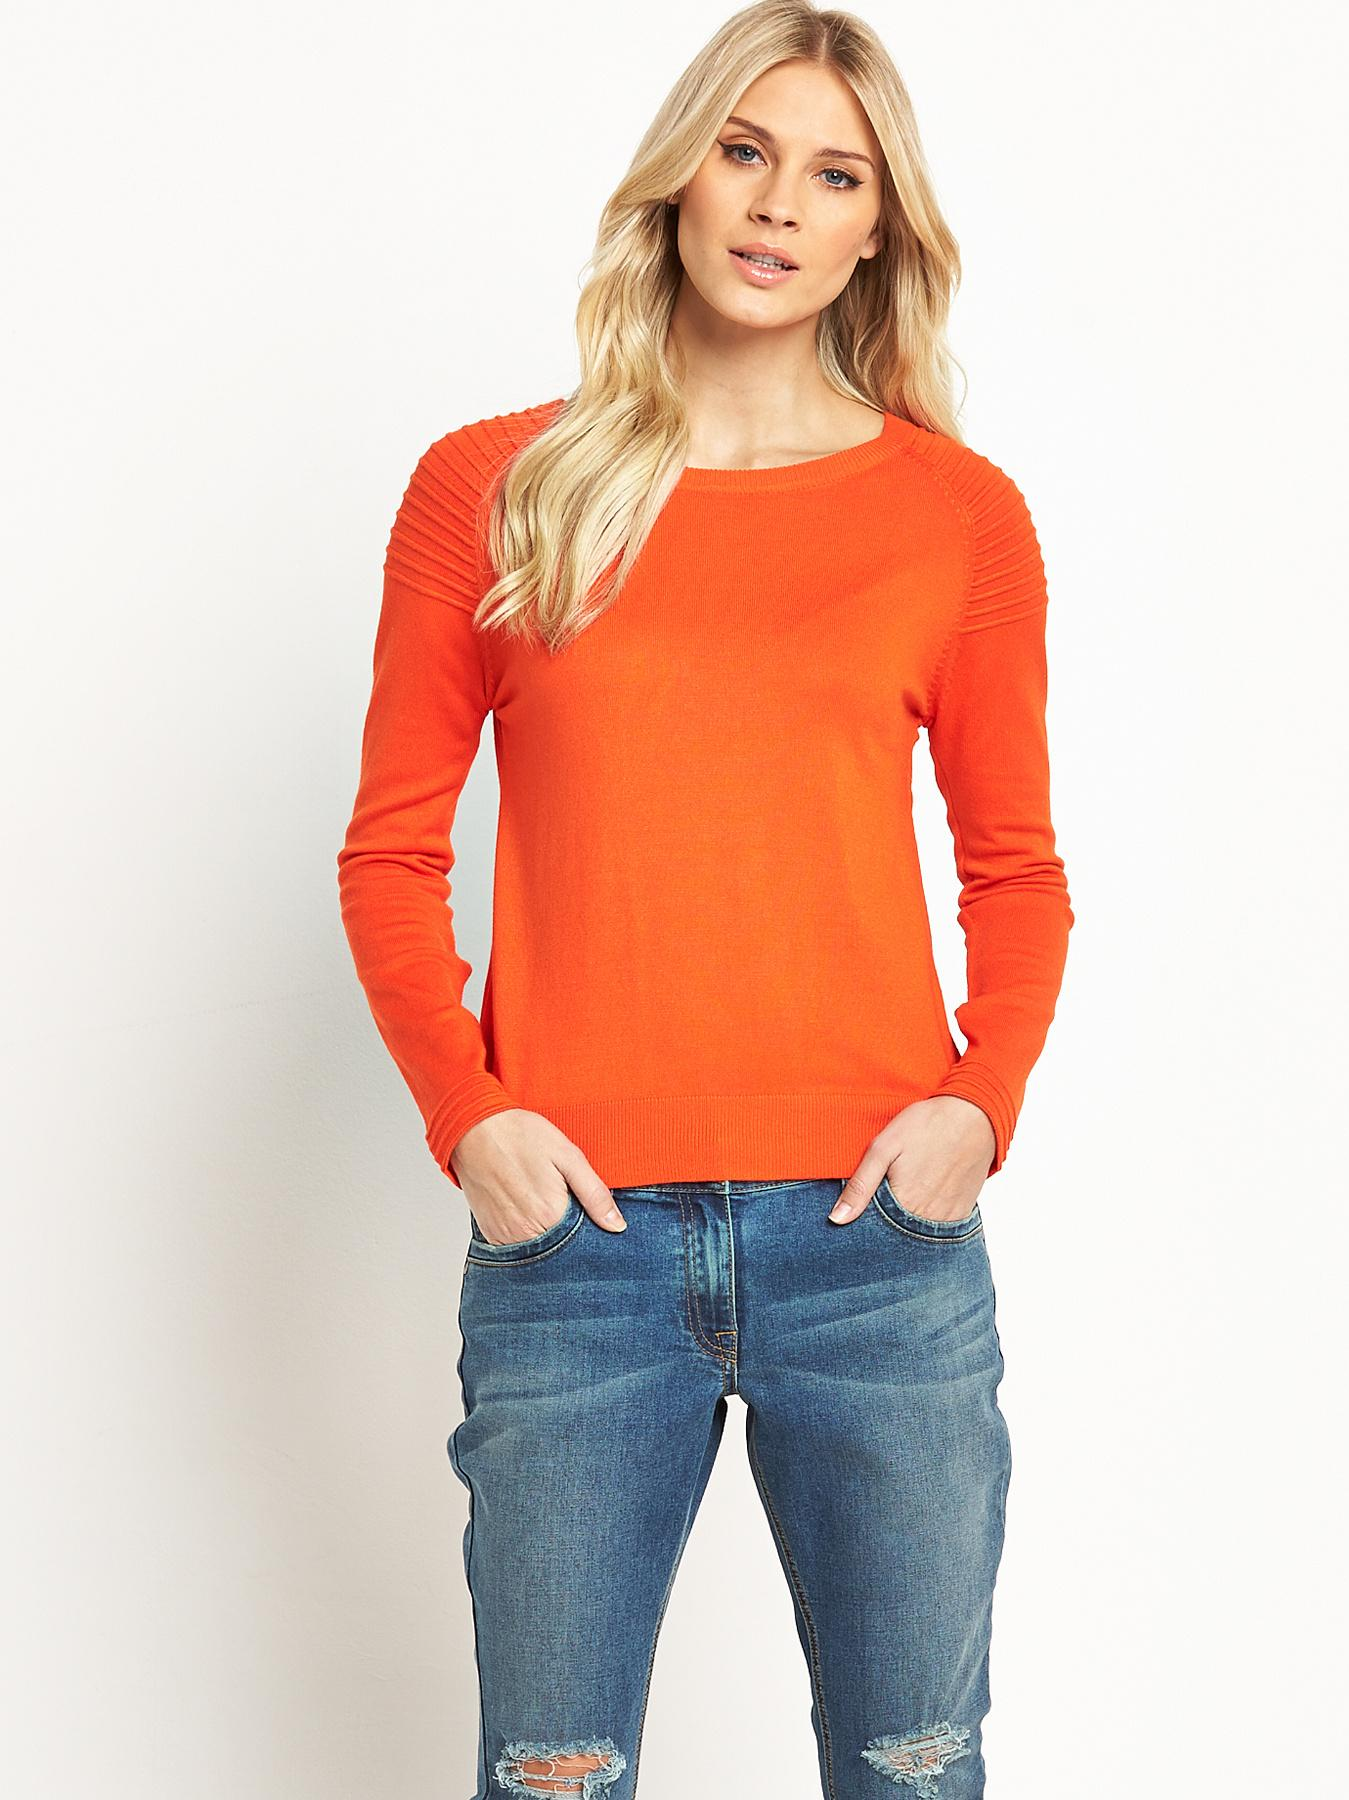 South Ripple Stitch Shoulder Detail Jumper - Black, Black,Orange,Lime